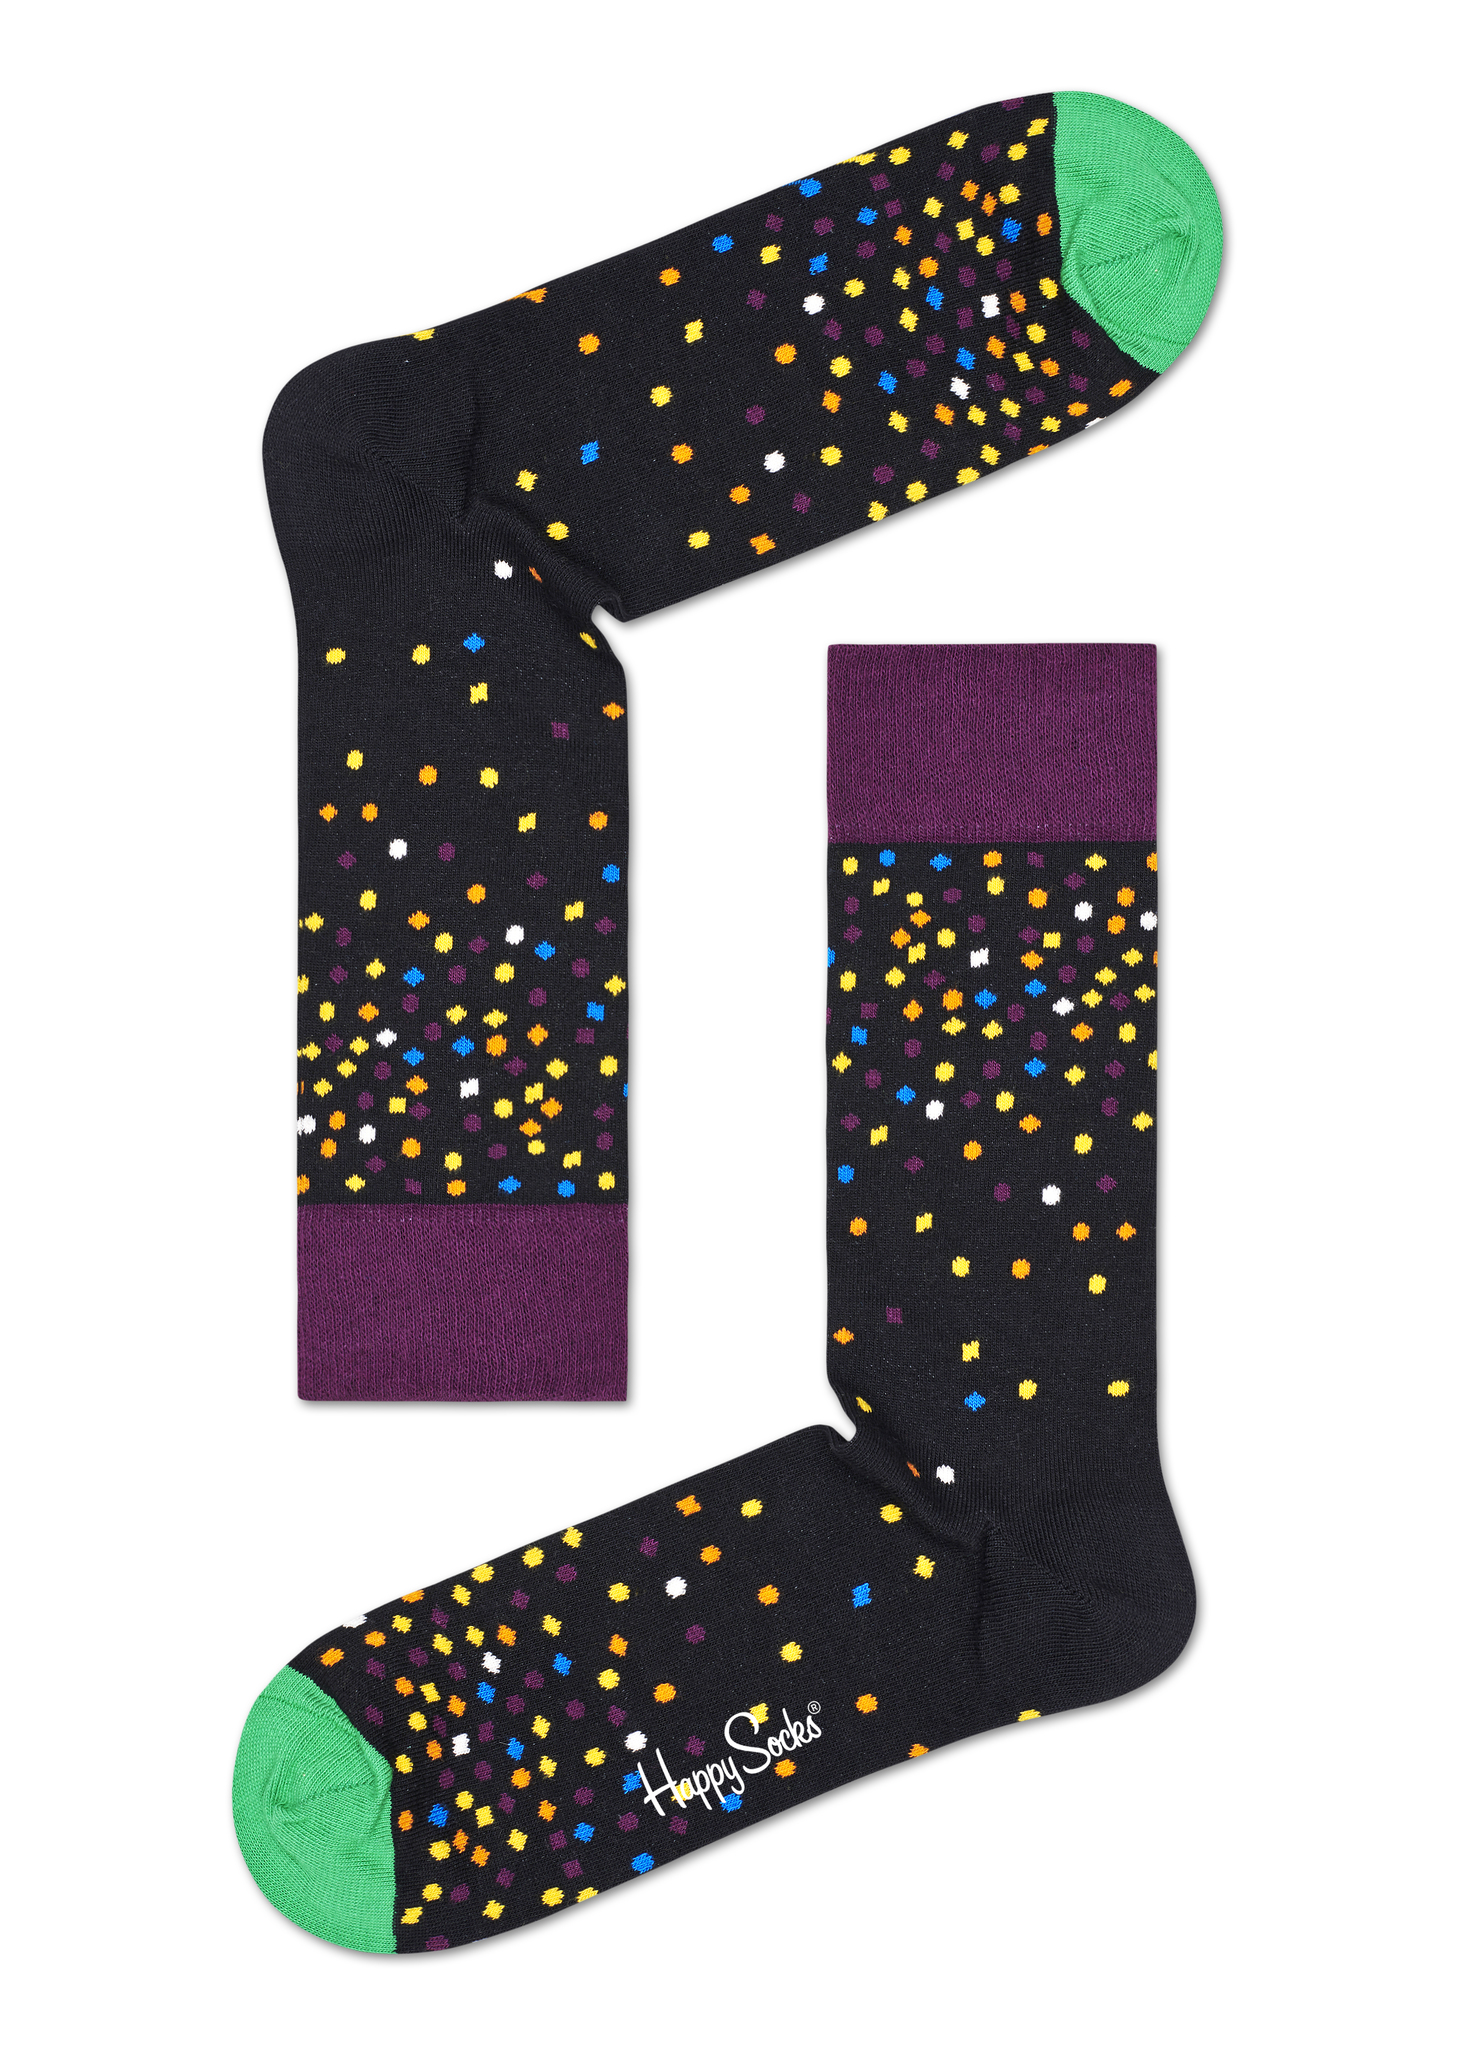 3-Pack Celebration Socks Gift Set